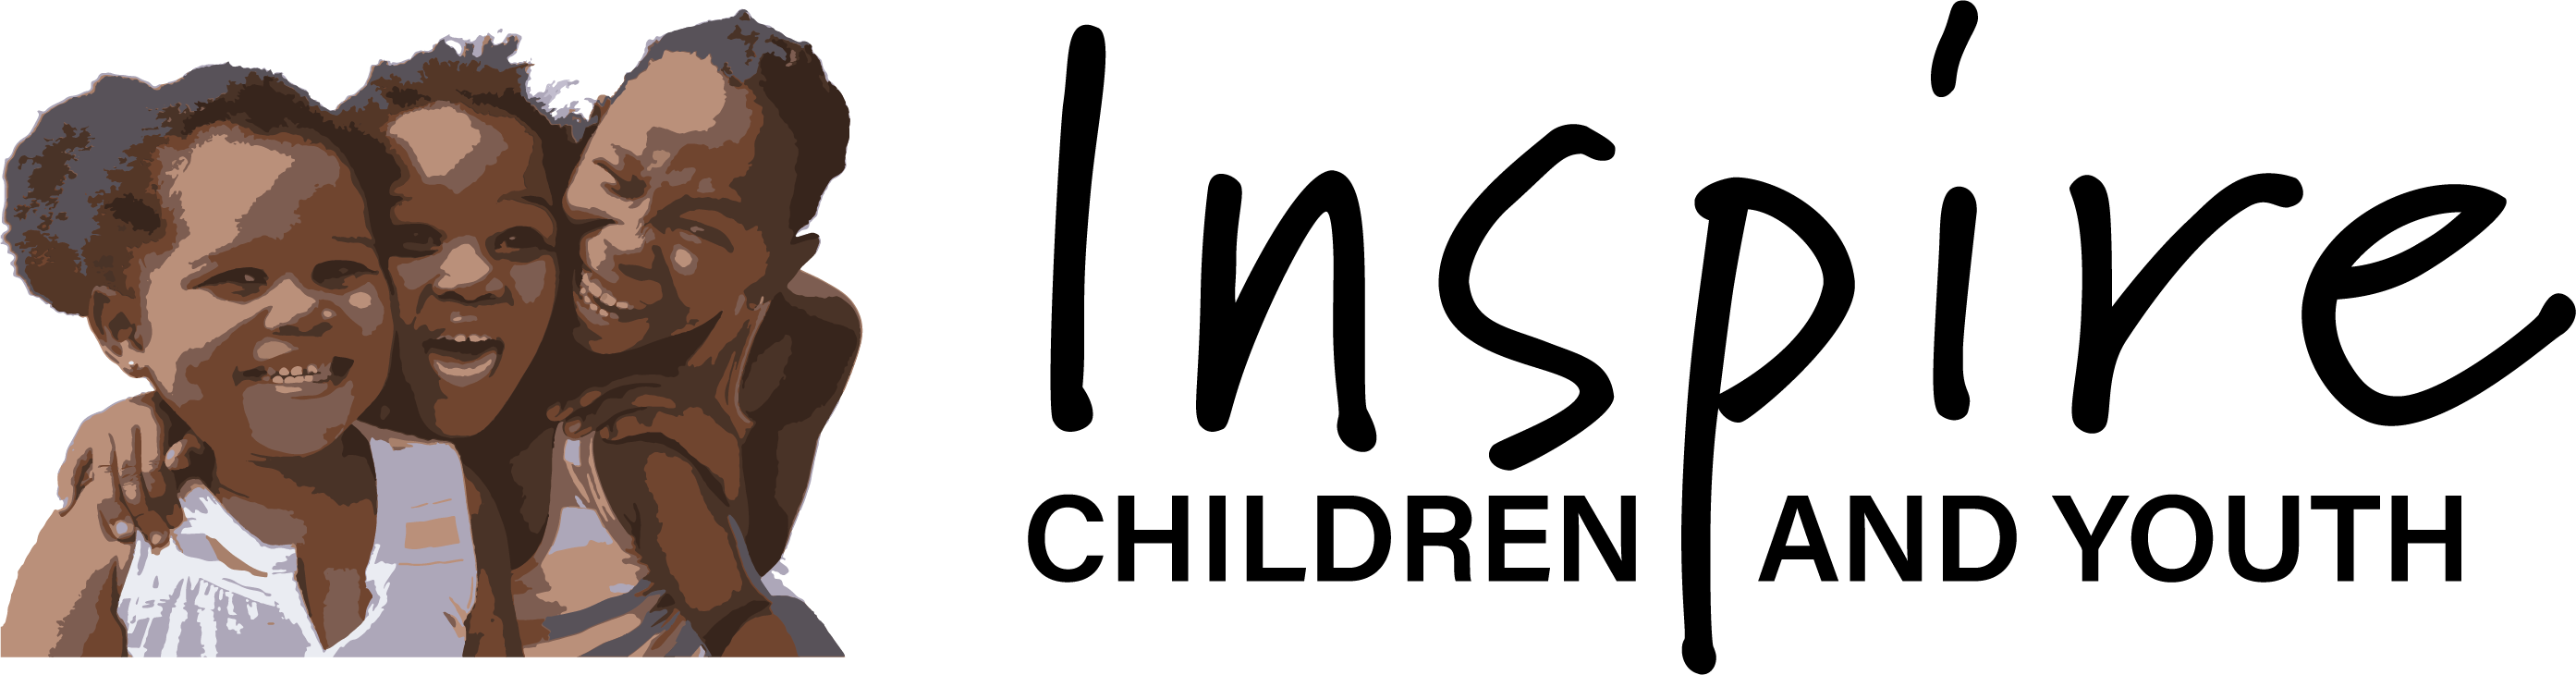 Inspire Children and Youth